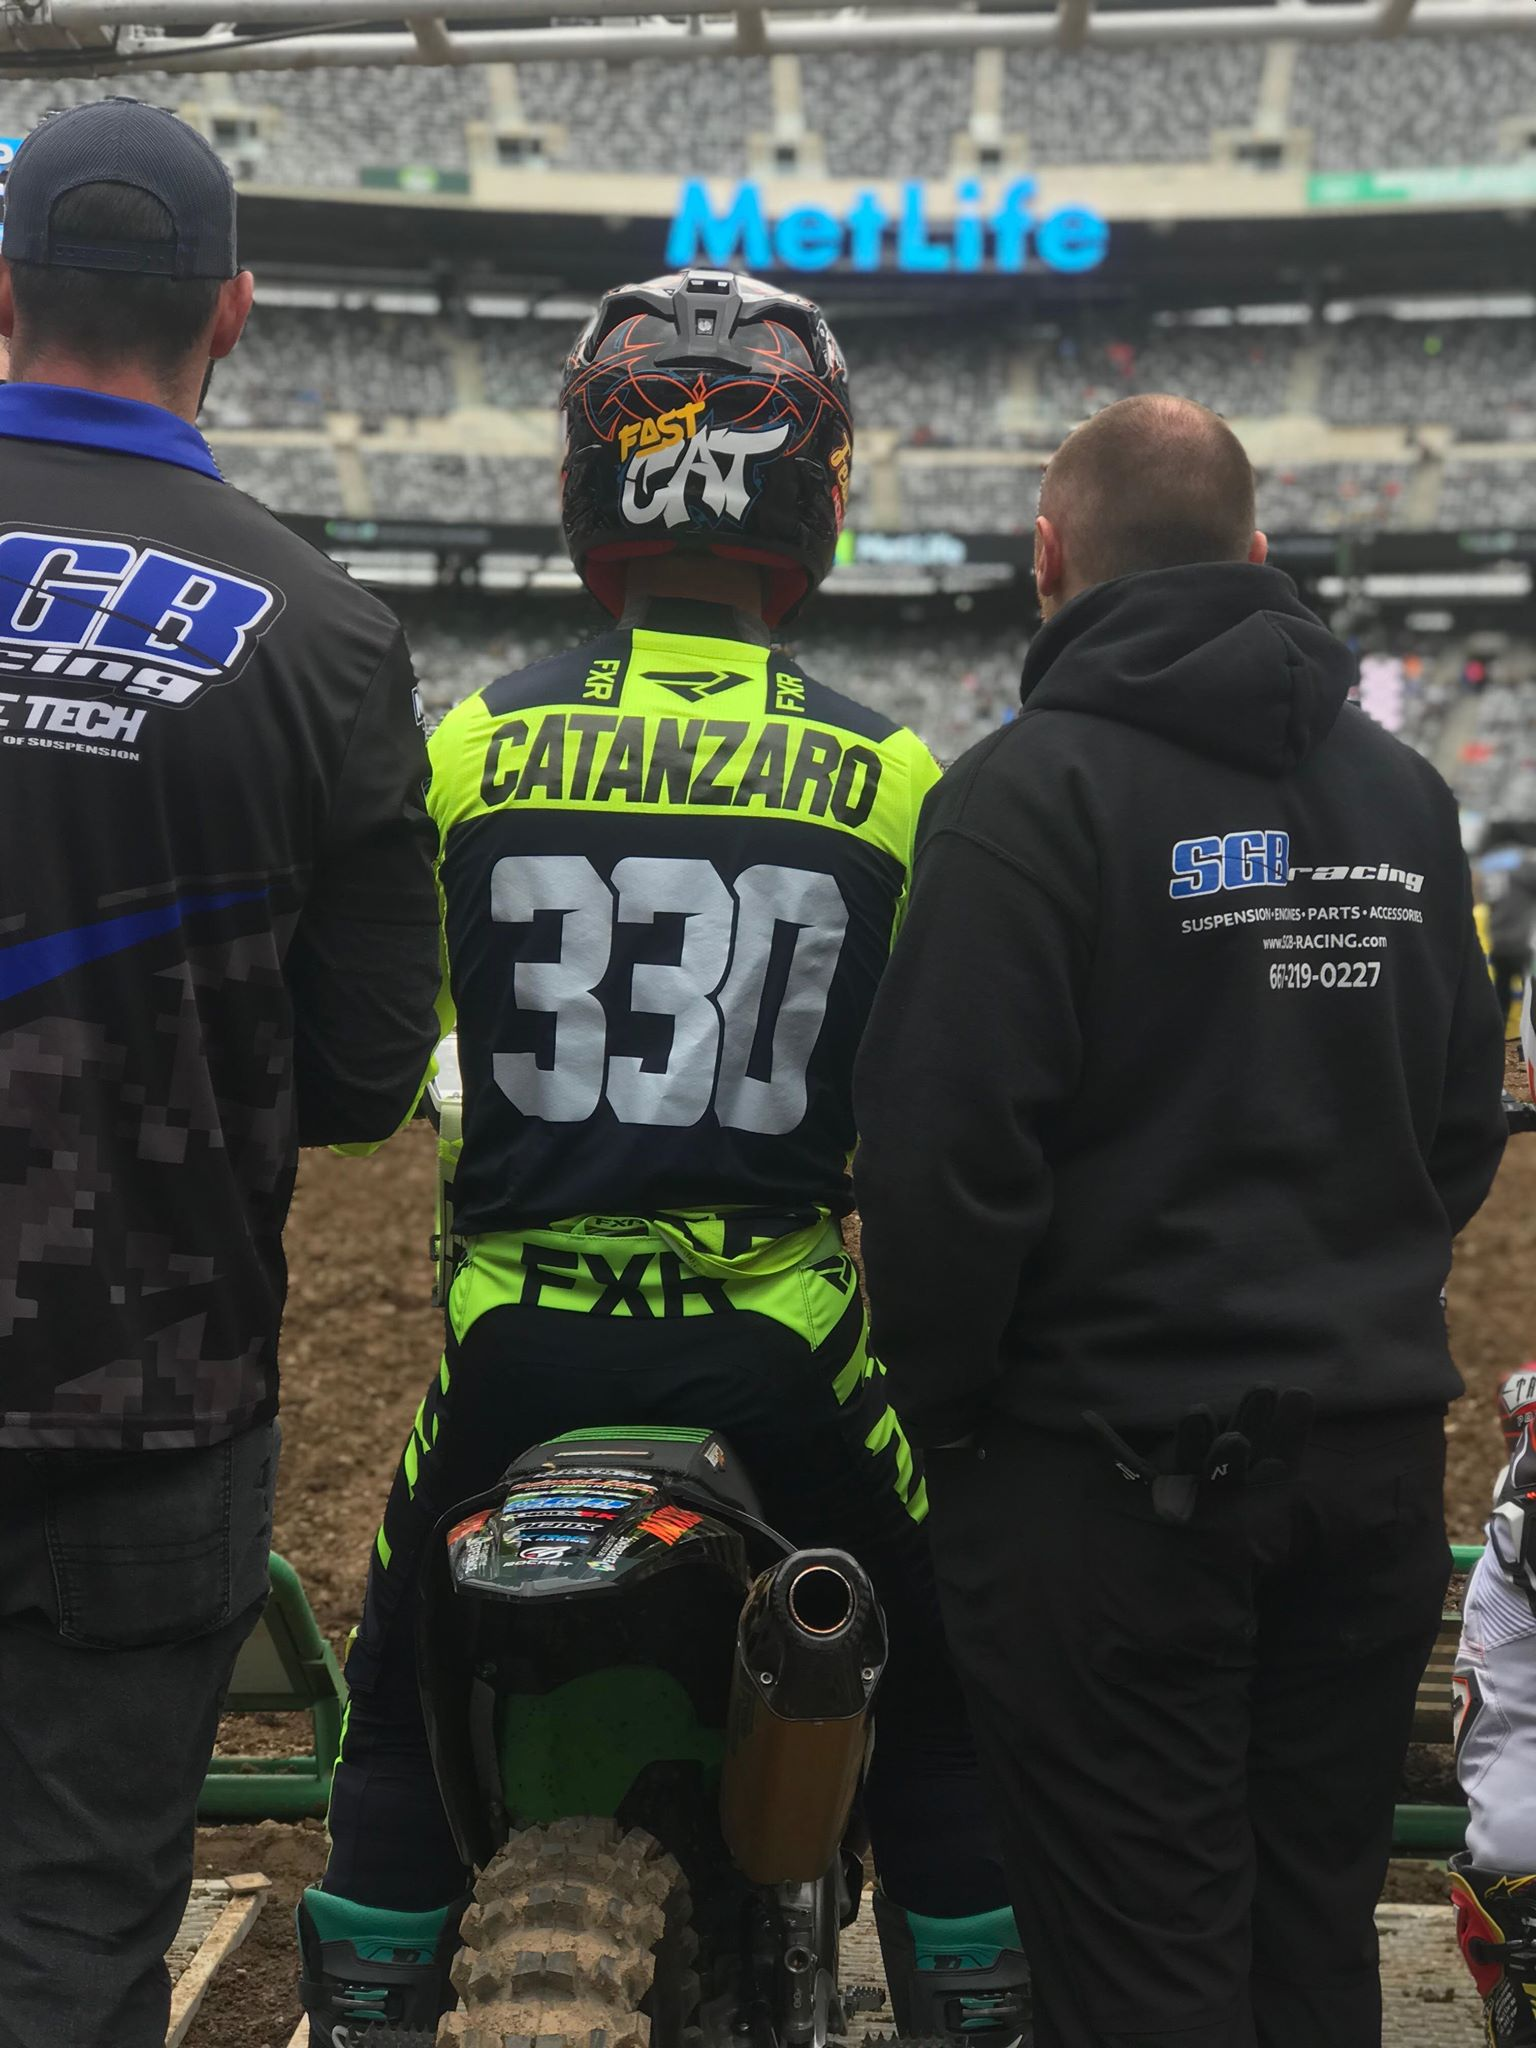 TCE rider AJ Catanzaro gets set for the gate drop with his crew mechanic Jason of SGB Racing and Mac Engel.